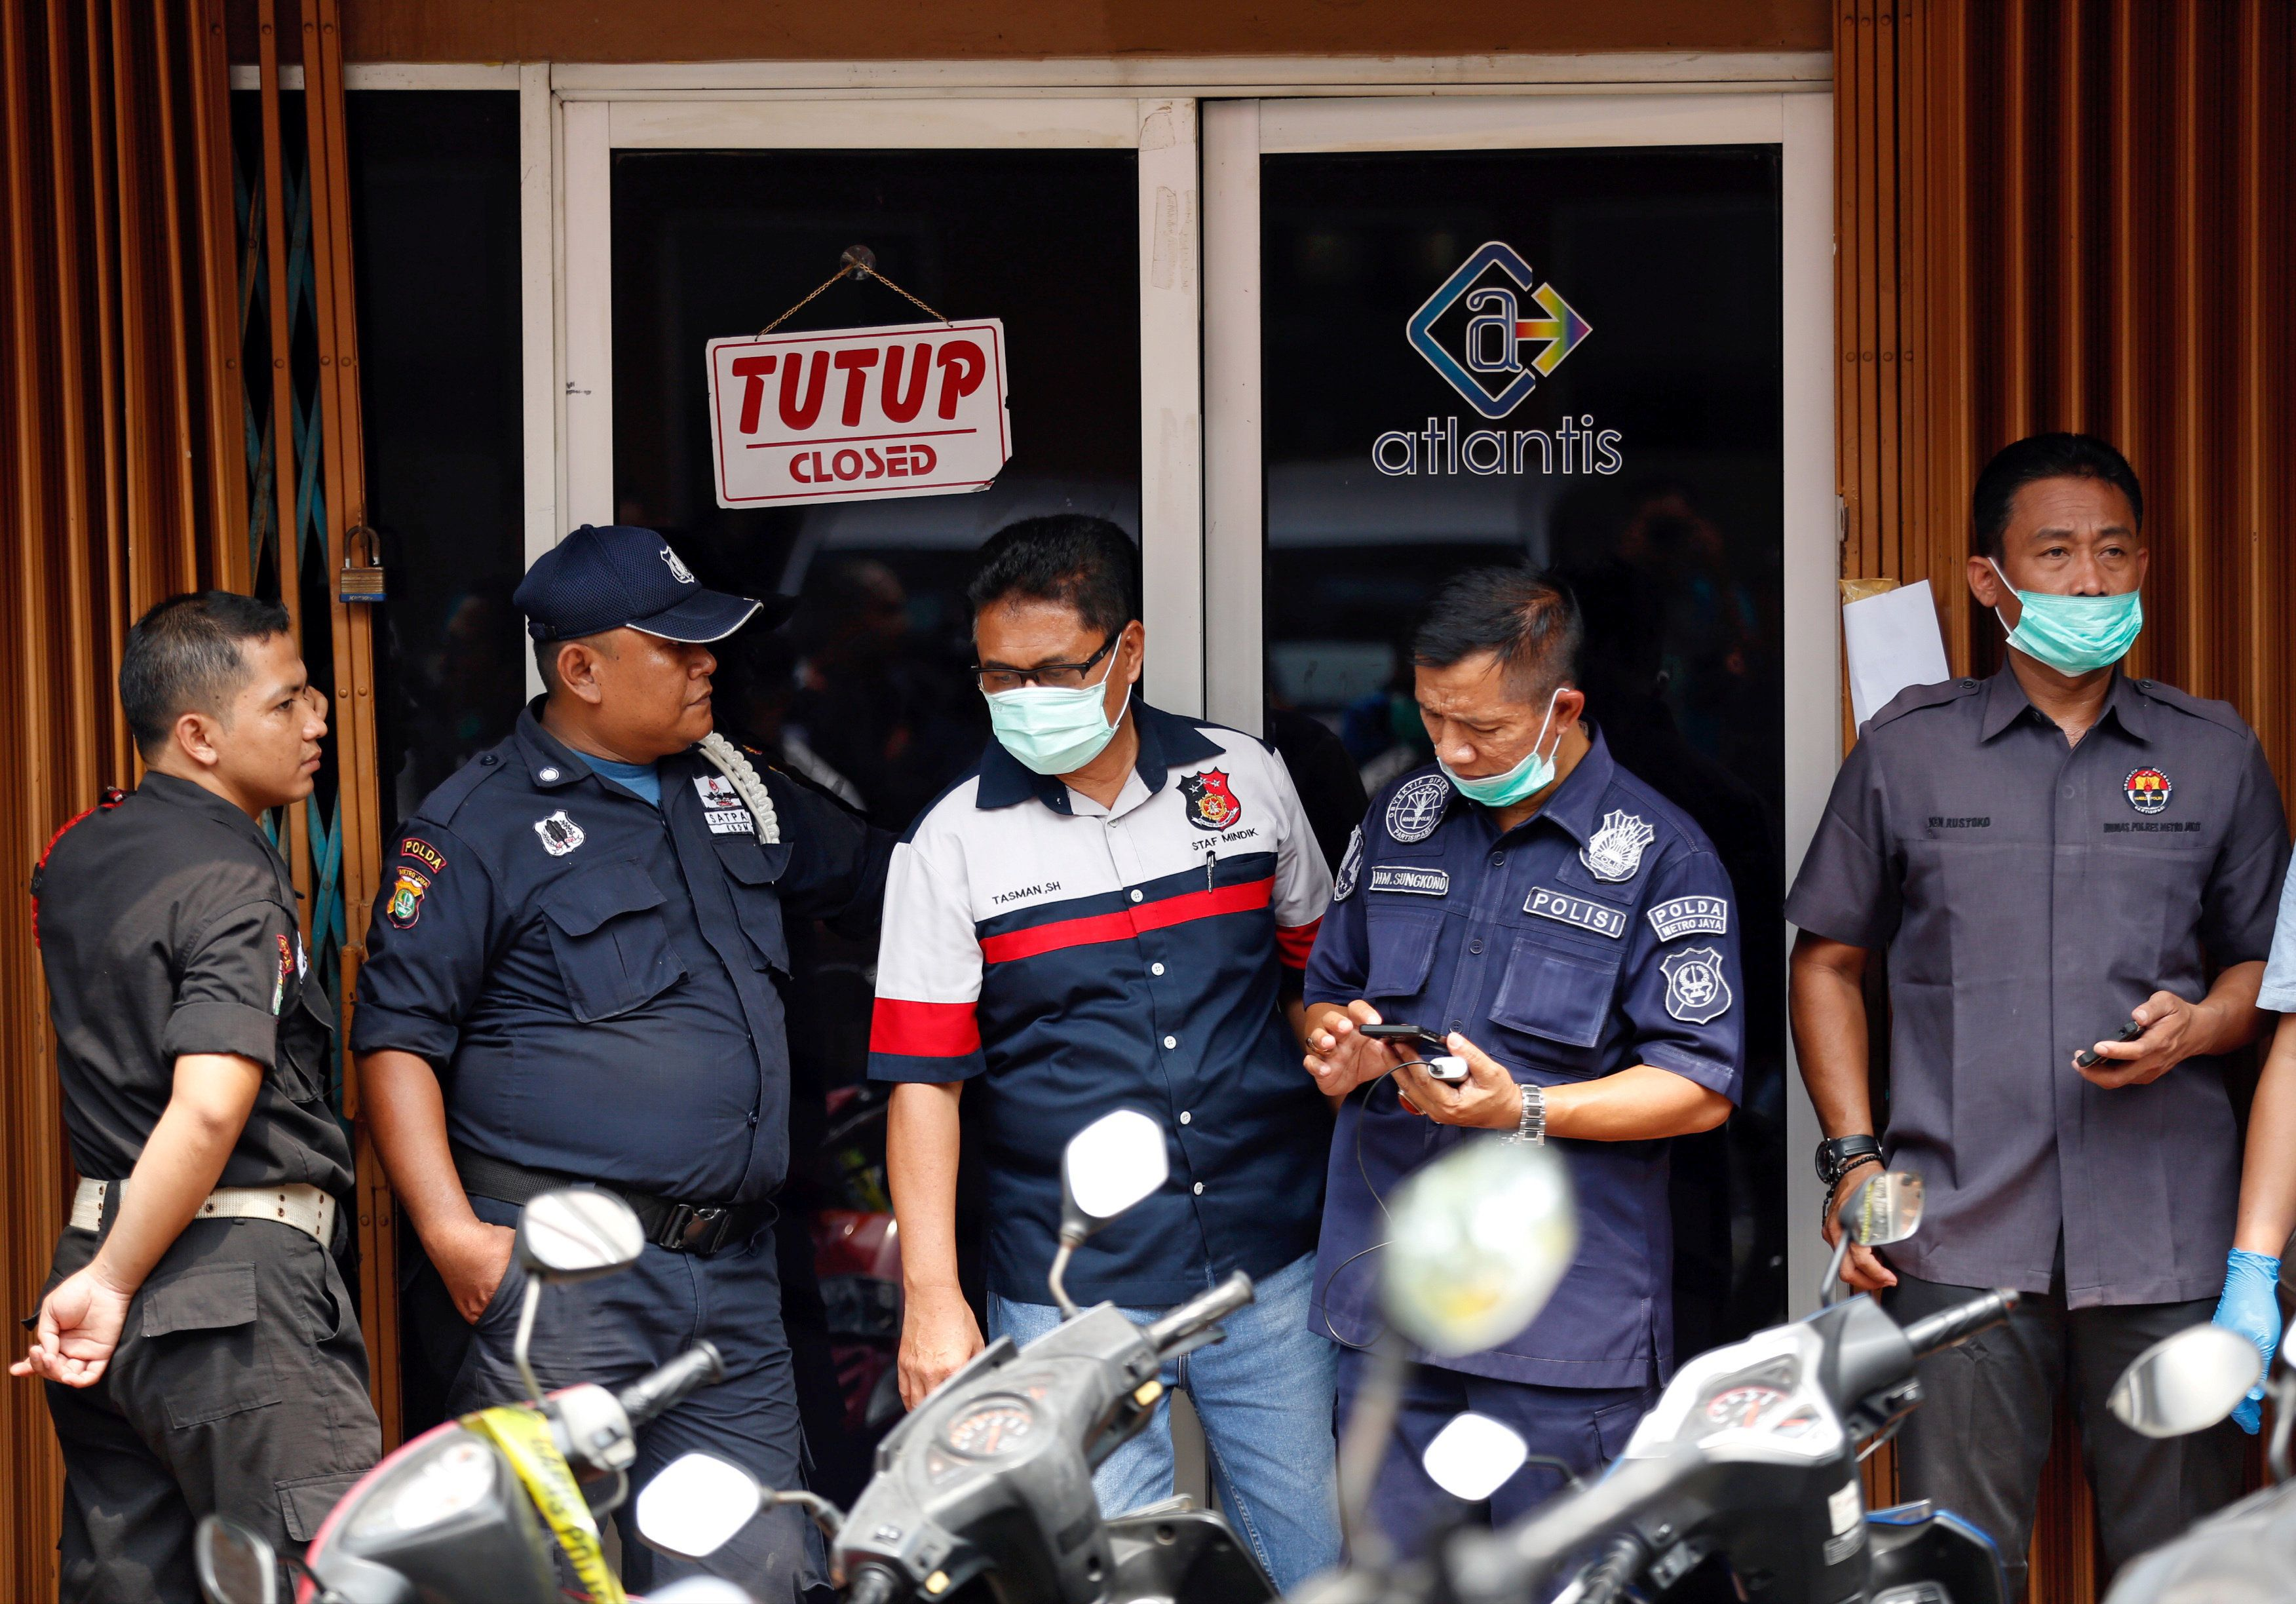 Police and security are seen outside the club where police detained 141 men for what they described as a gay prostitution ring in Jakarta, Indonesia May 23, 2017. REUTERS/Darren Whiteside     TPX IMAGES OF THE DAY